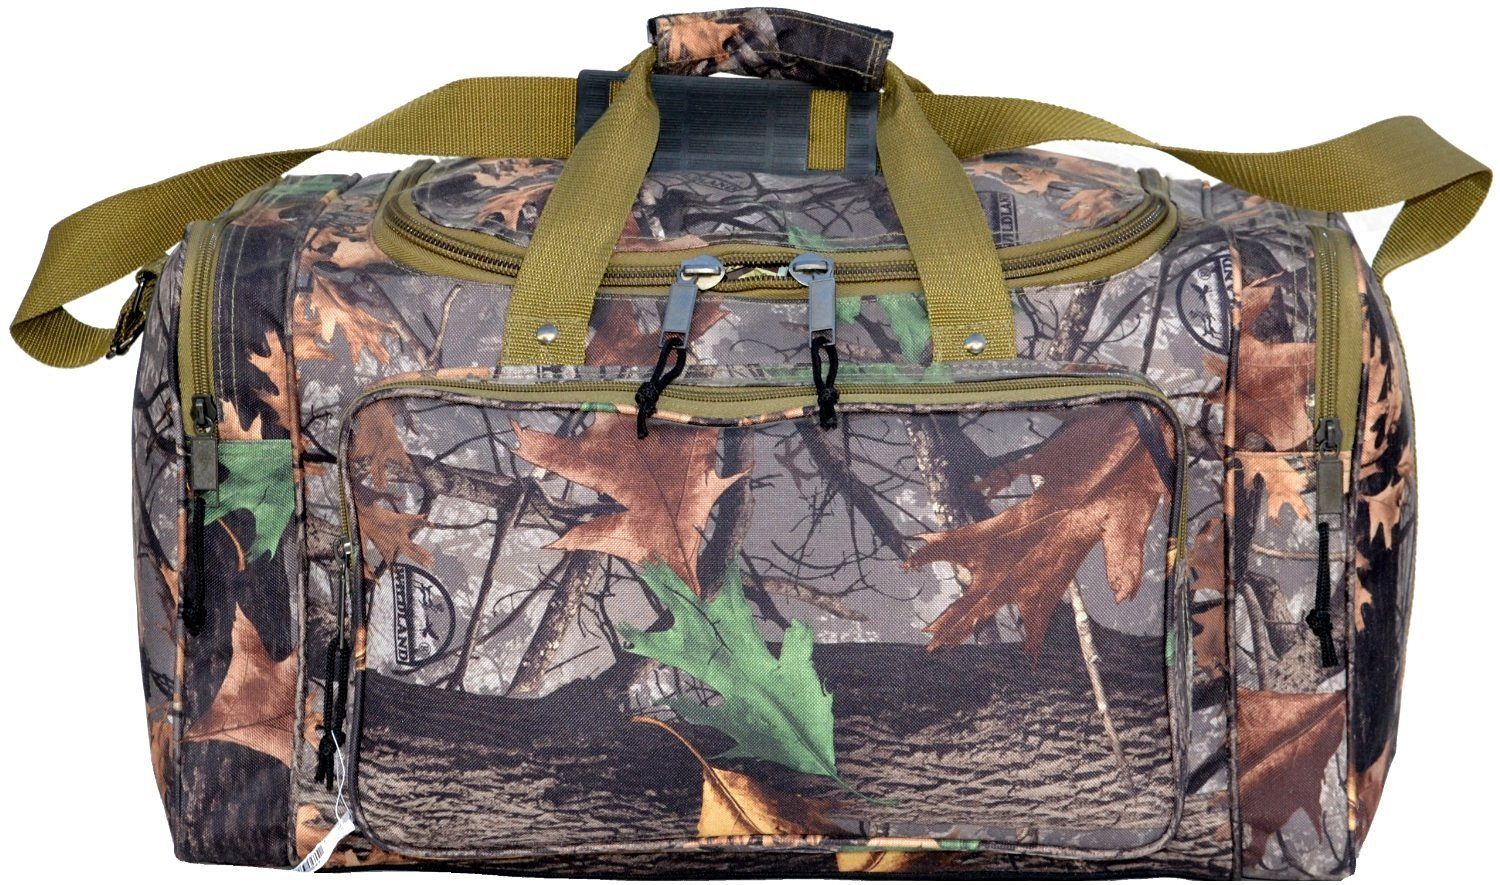 Cheap Realtree Hunting Camo Find Realtree Hunting Camo Deals On